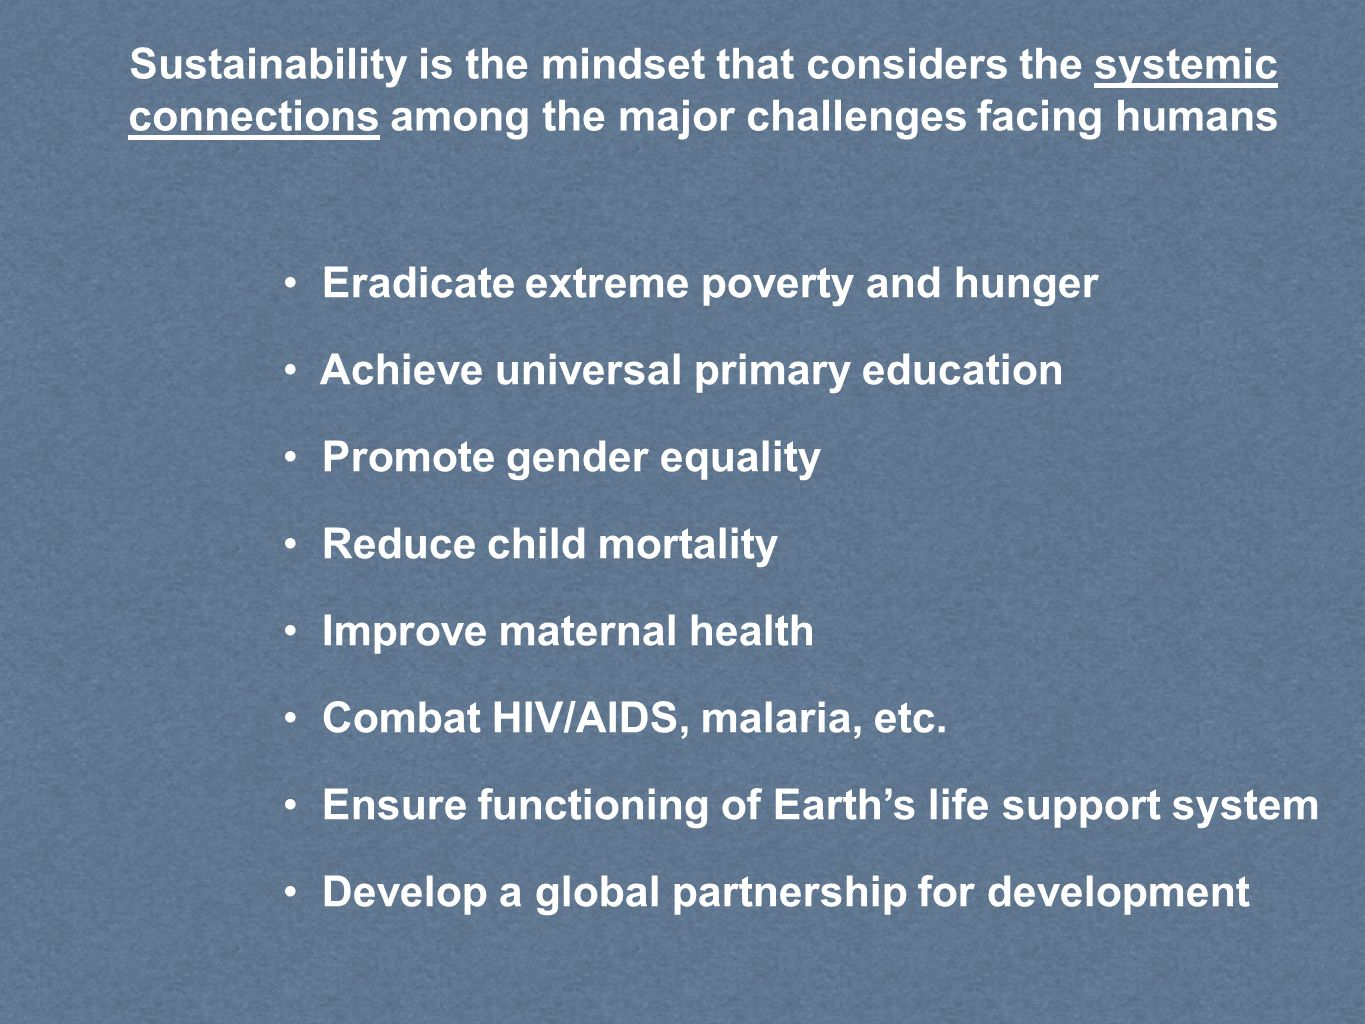 Sustainability is the mindset that considers the systemic connections among the major challenges facing humans Eradicate extreme poverty and hunger Achieve universal primary education Promote gender equality Reduce child mortality Improve maternal health Combat HIV/AIDS, malaria, etc.